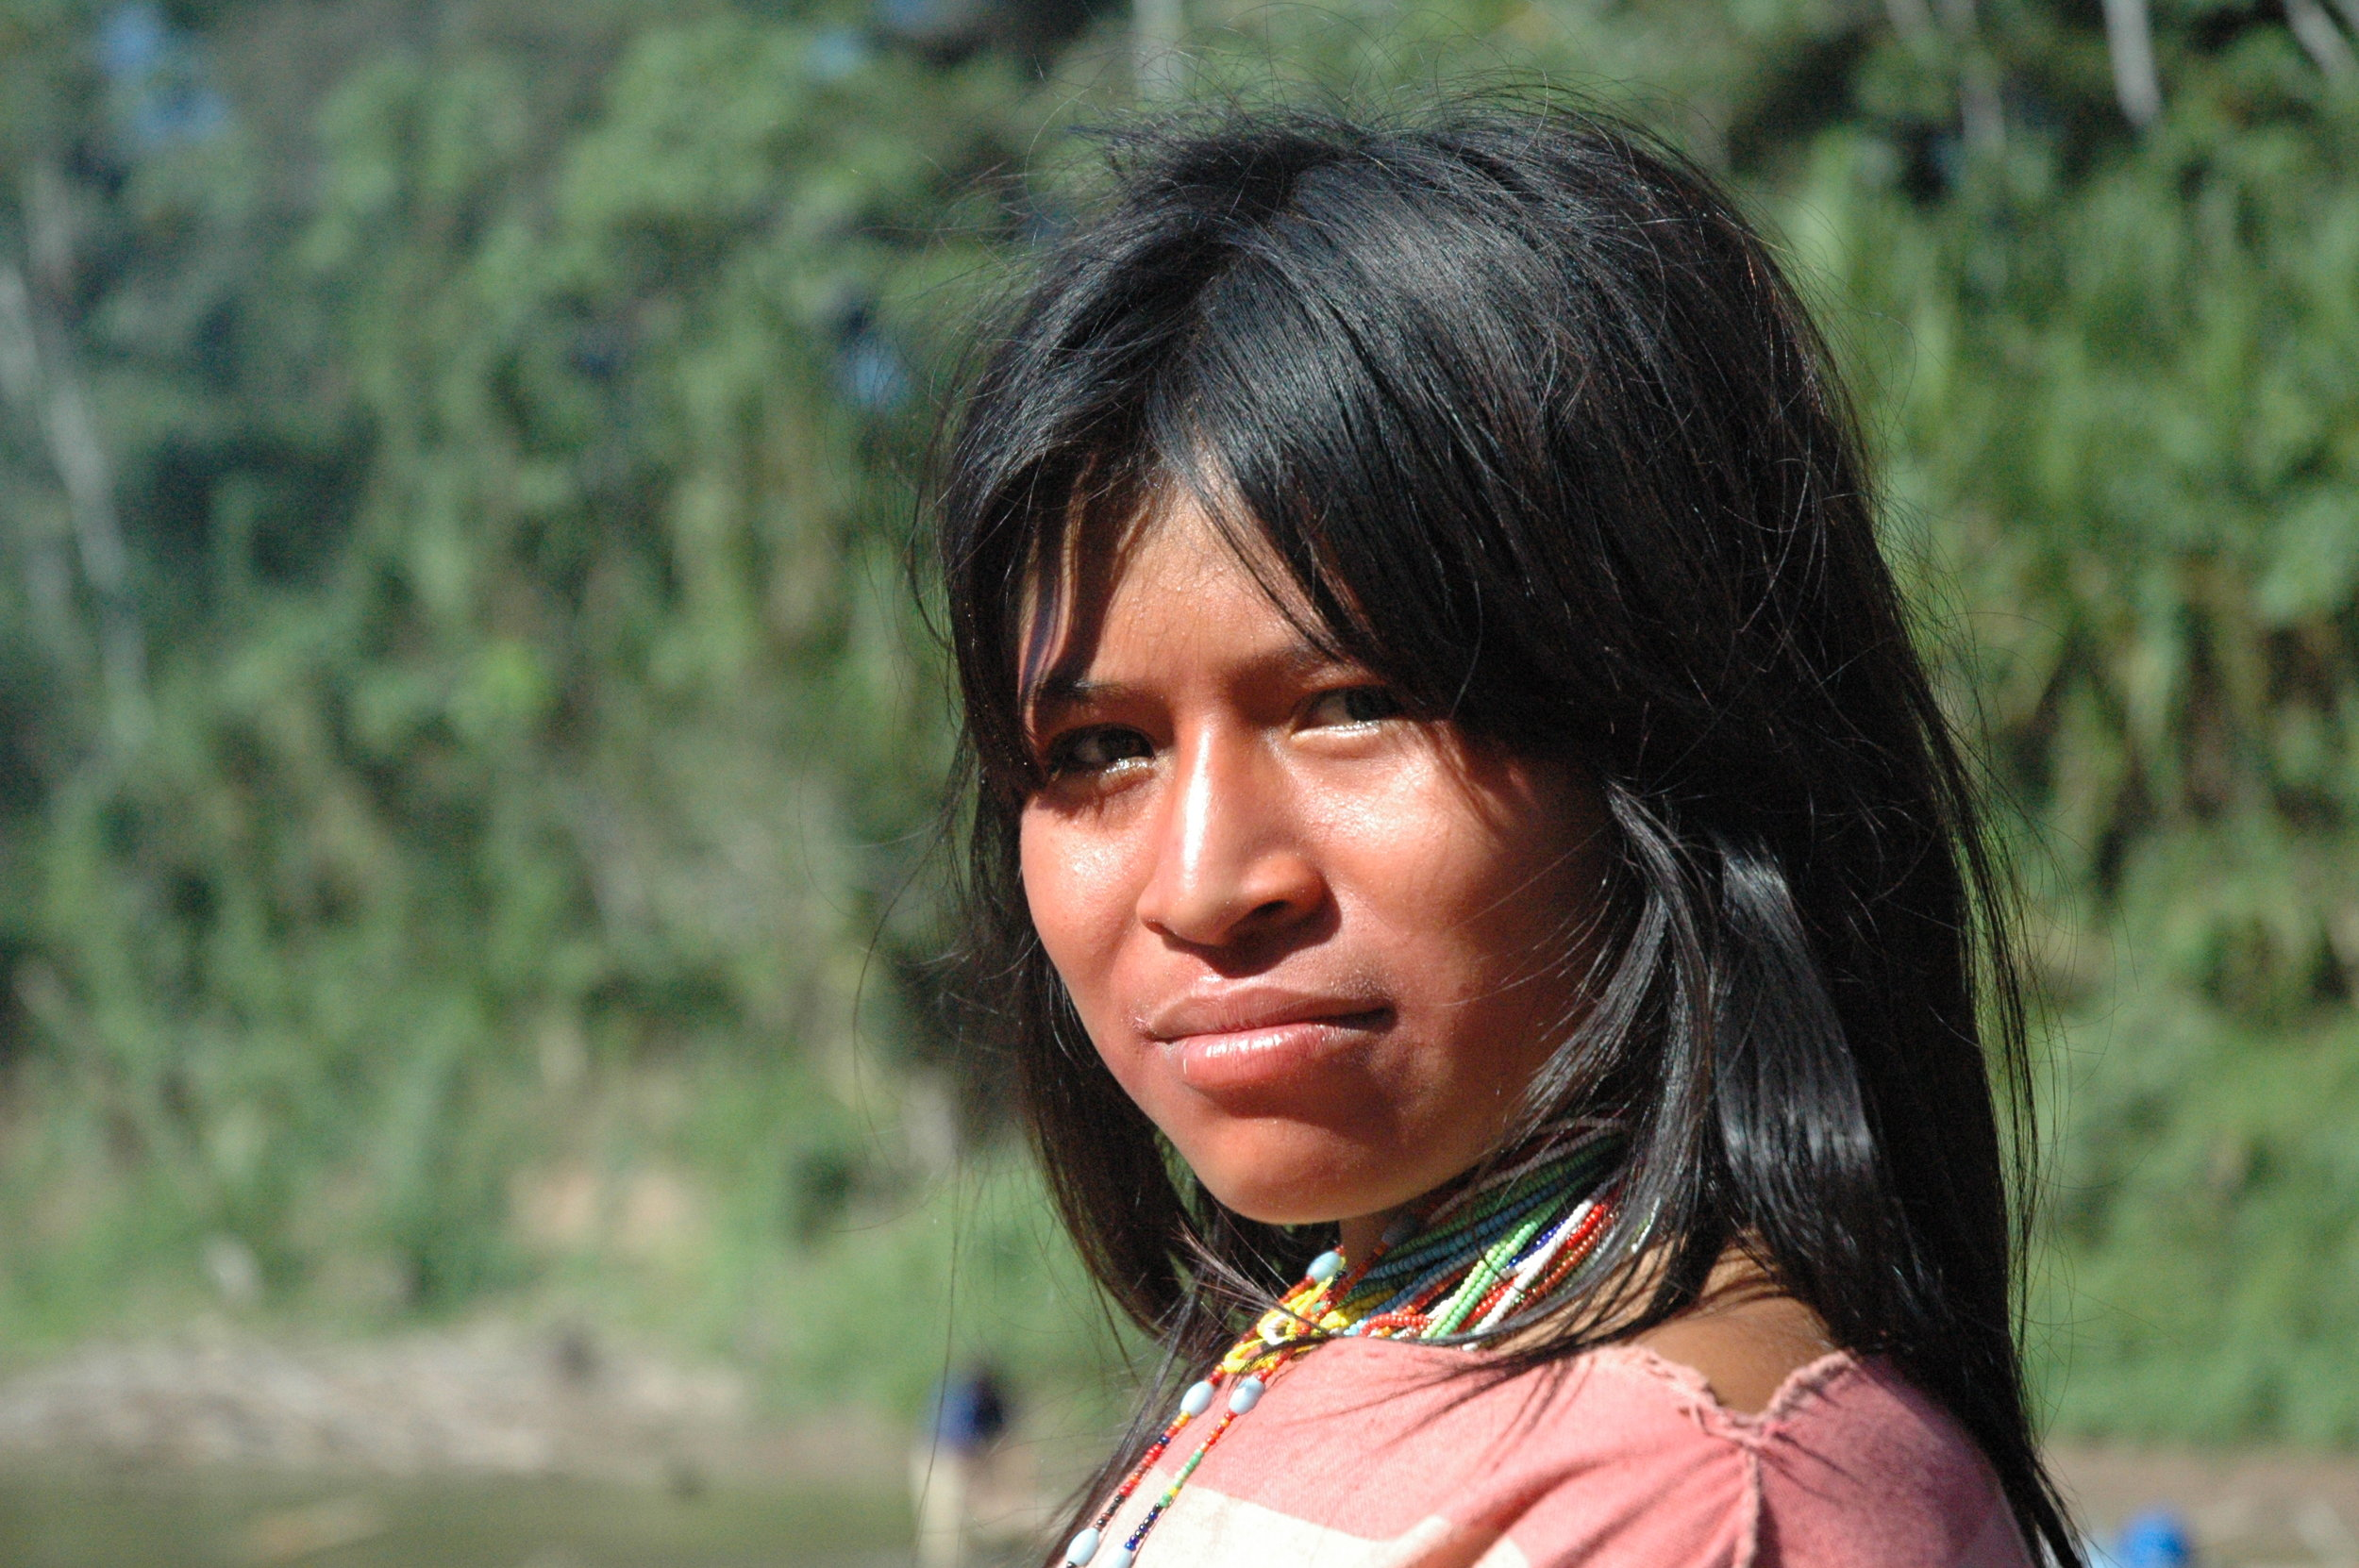 An Ashéninka woman along the upper River Yurúa in Ucayali, Peru. The Ashéninka are one of more than 60 indigenous peoples in Peru. Credit: David Hill/Survival